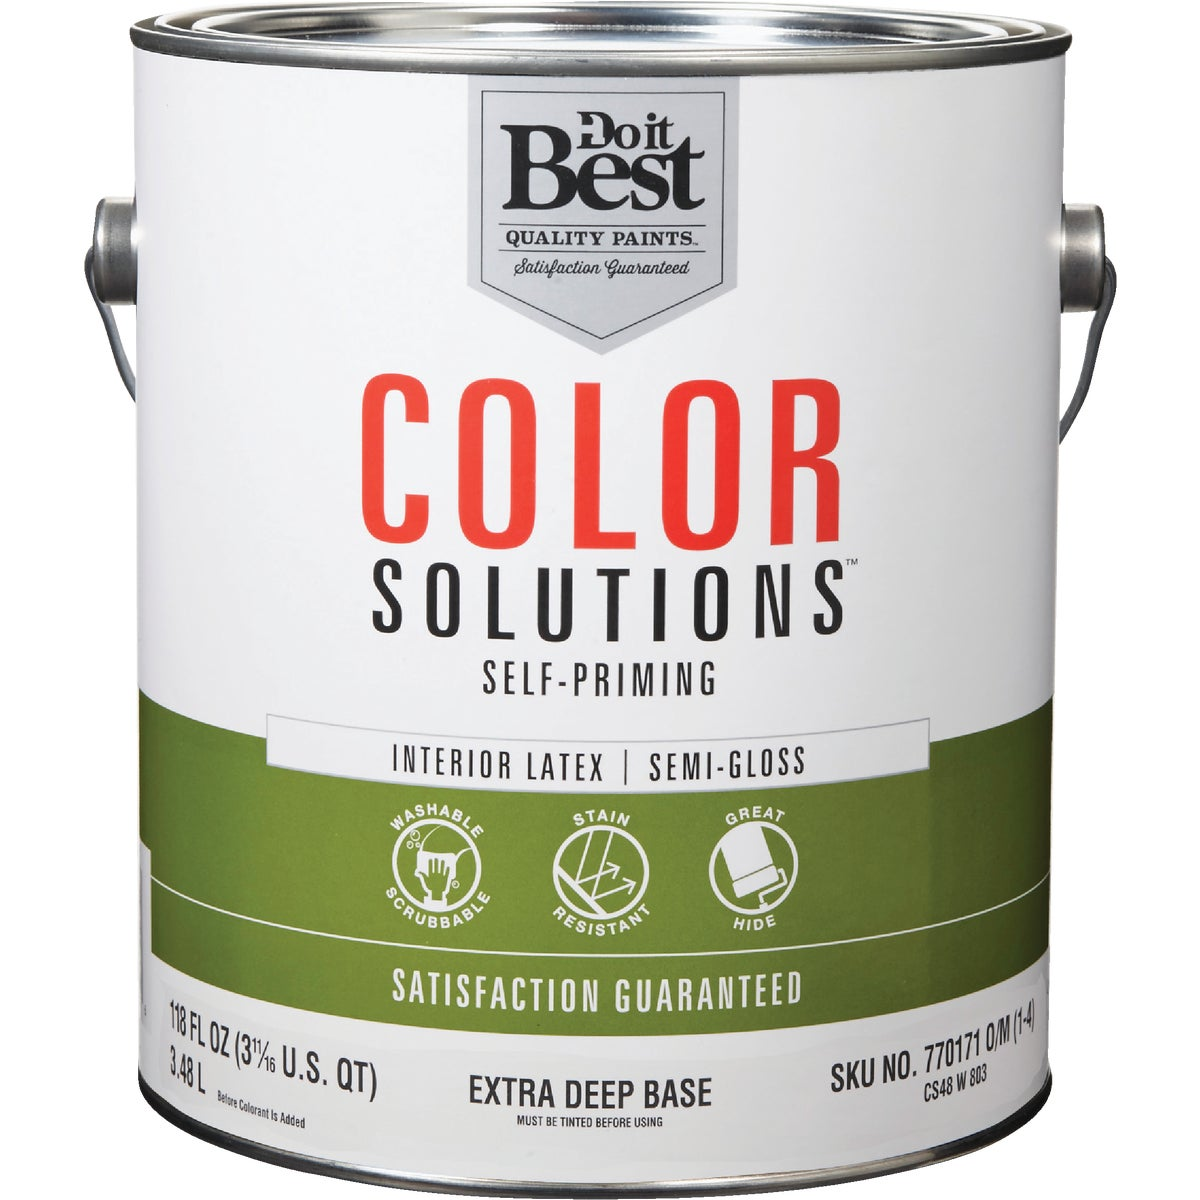 INT S/G EX DEEP BS PAINT - CS48W0803-16 by Do it Best